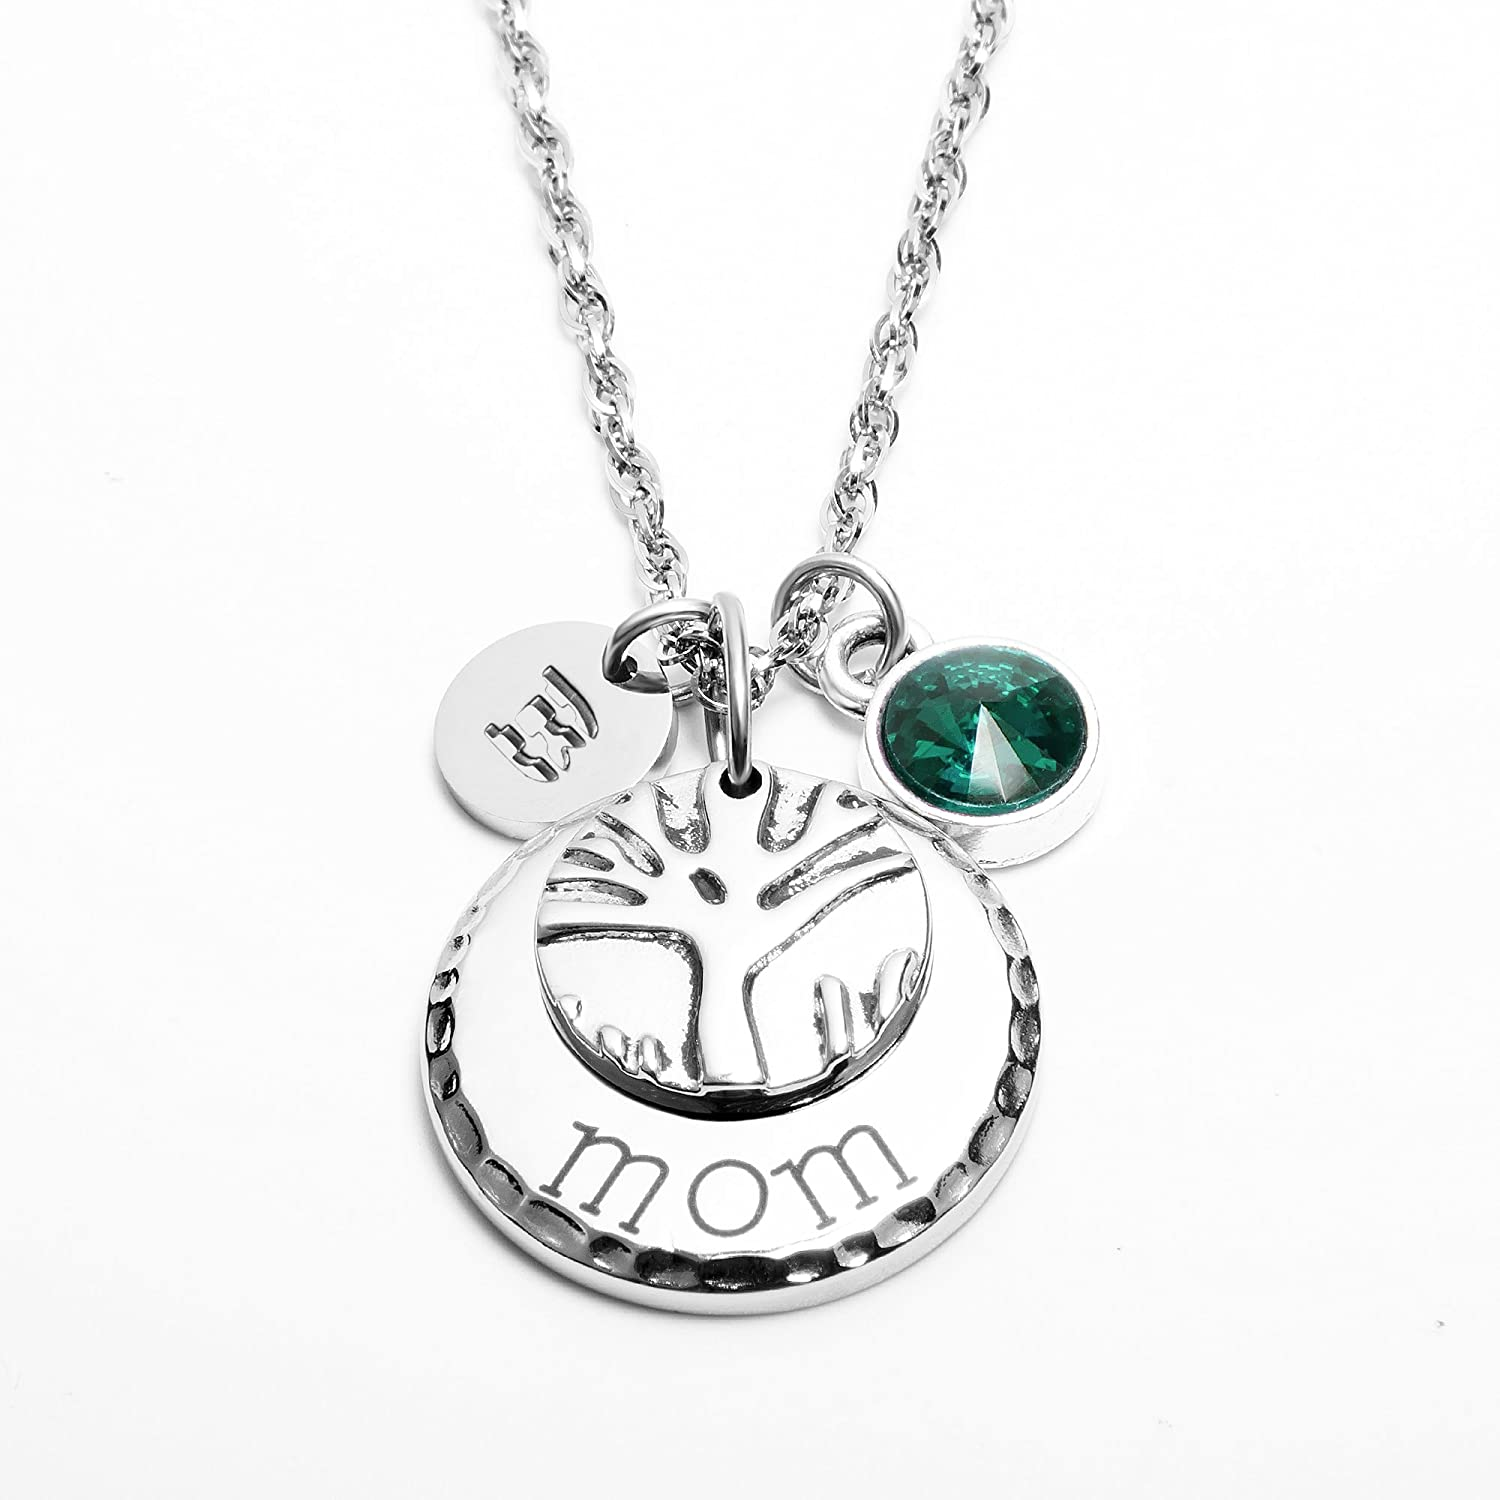 IMEIM Jewelry Mom Family Tree Necklace Personalized Mother Necklace with Birthstones Crystal Initial Charm for Mom Wife Aunt Grandma